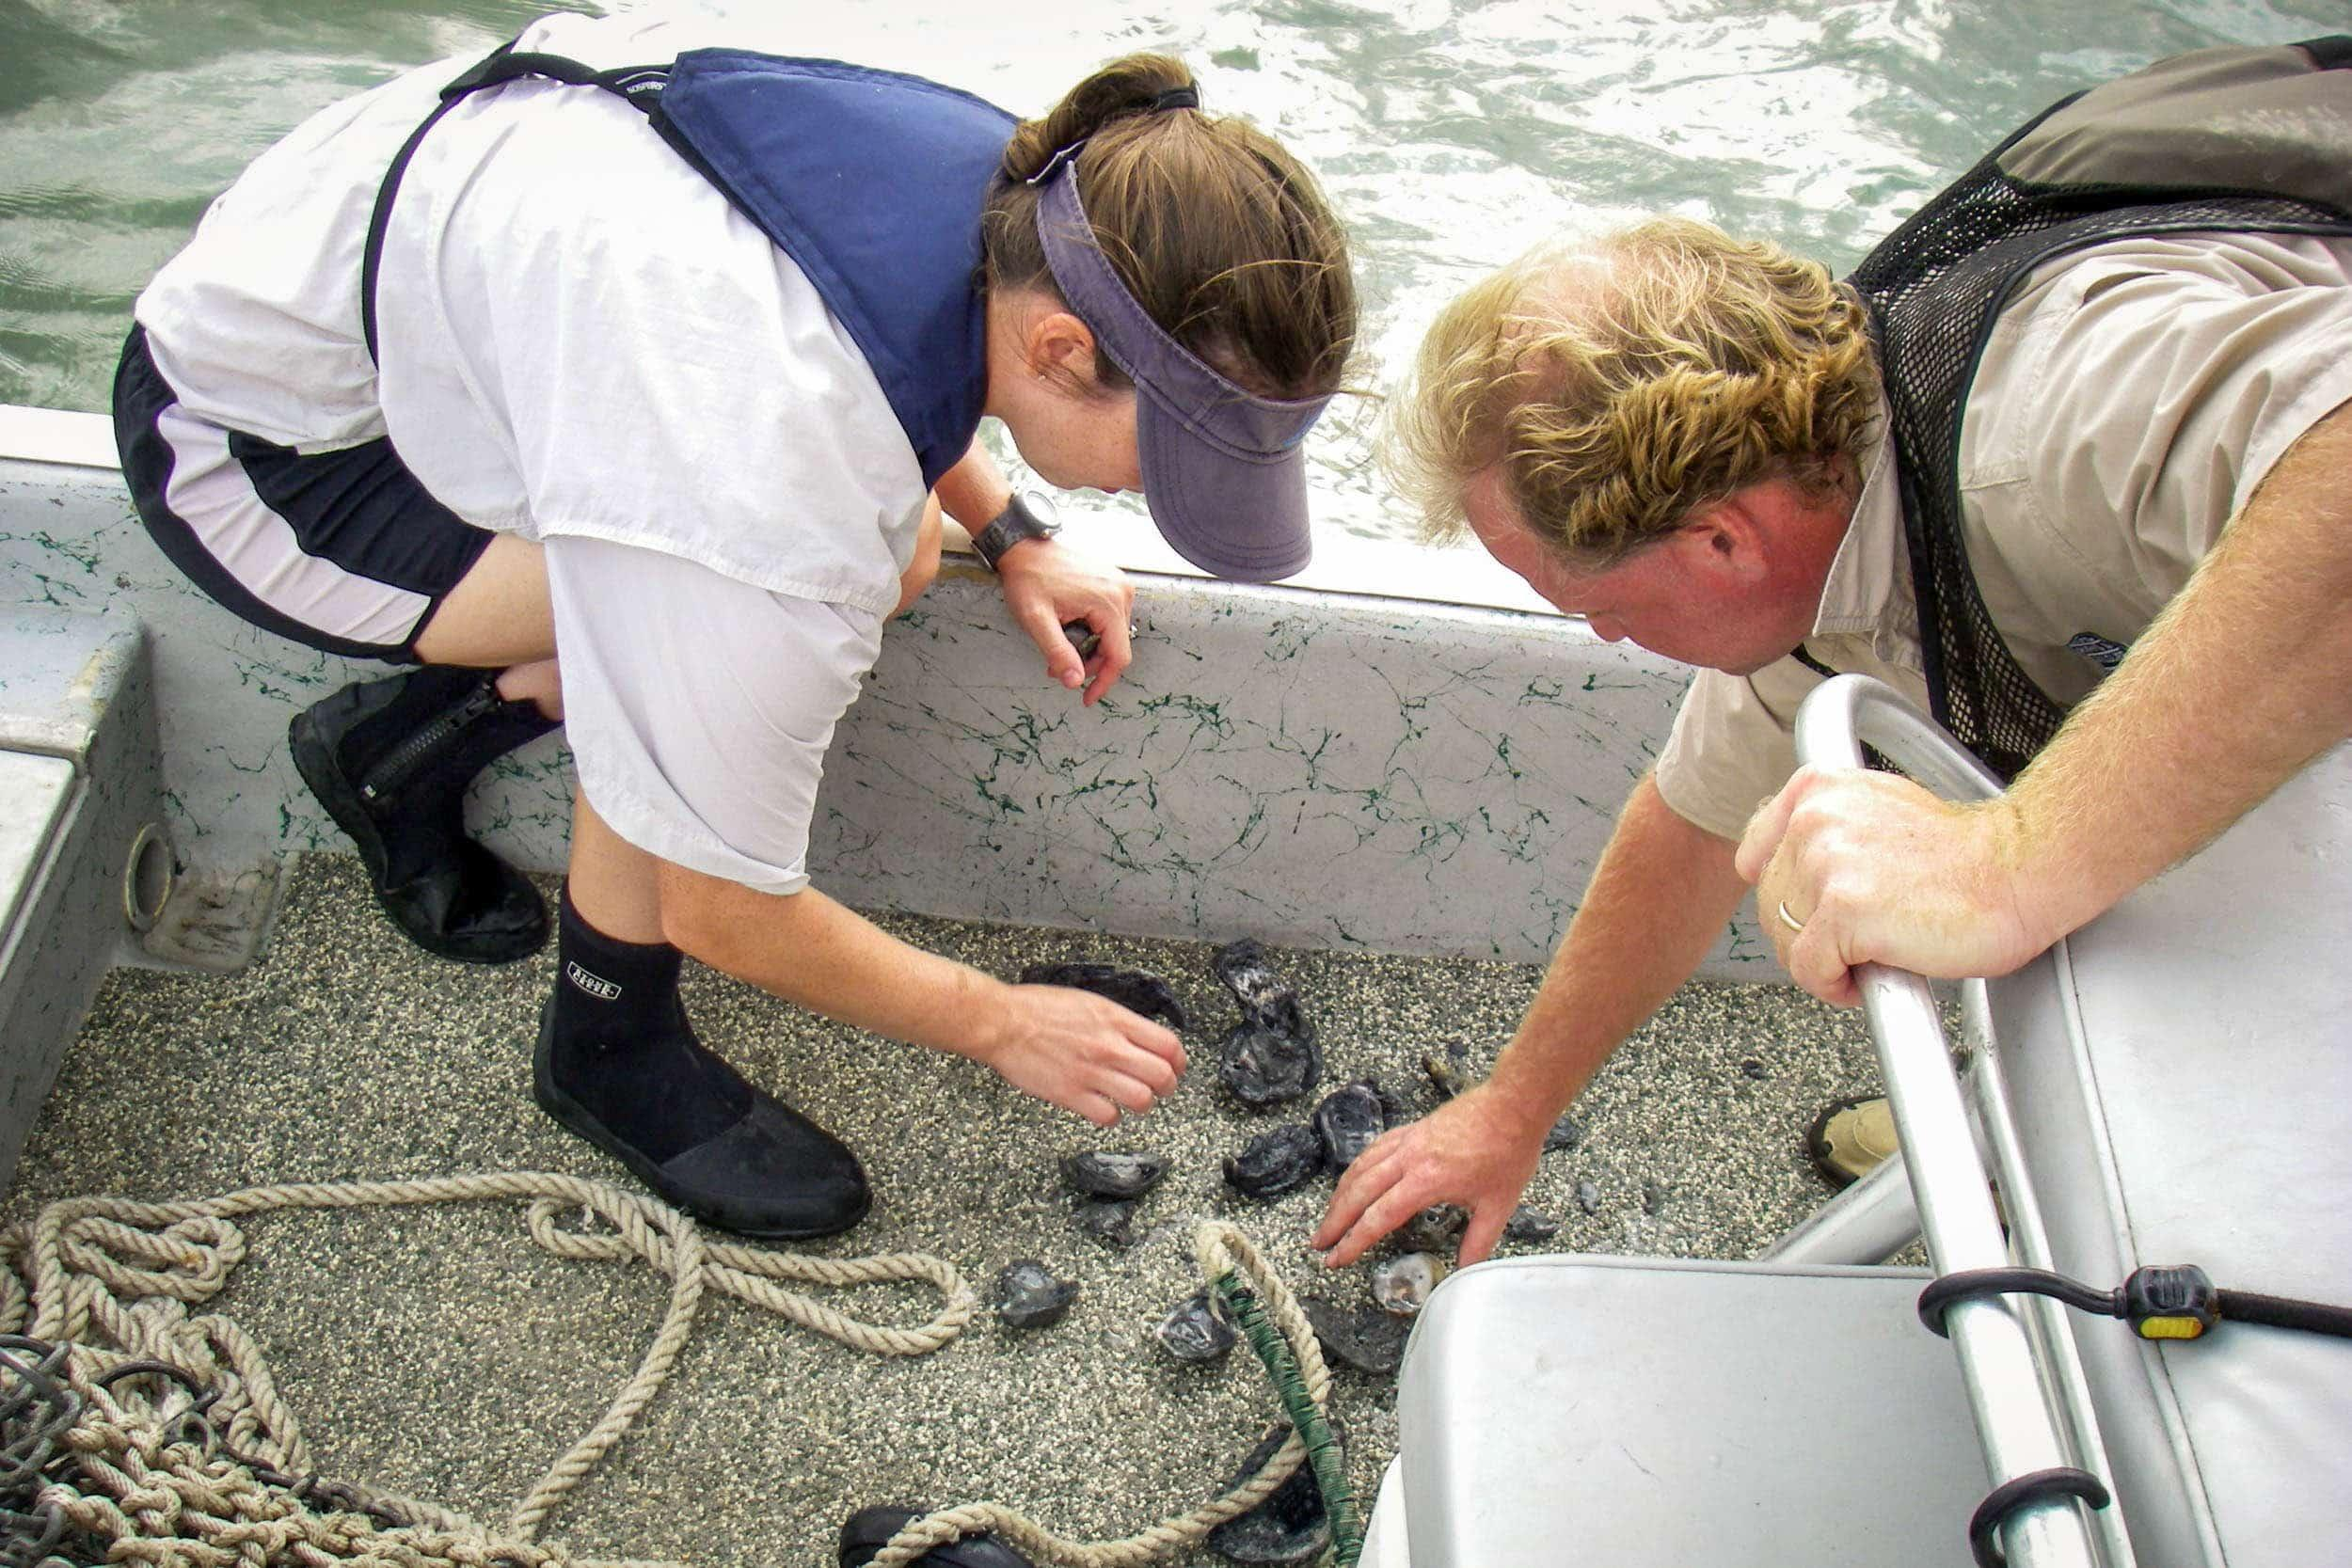 Danielle Crossen, research assistant, and Glen Sutton, TPWD biologist, sort oysters collected in Galveston Bay